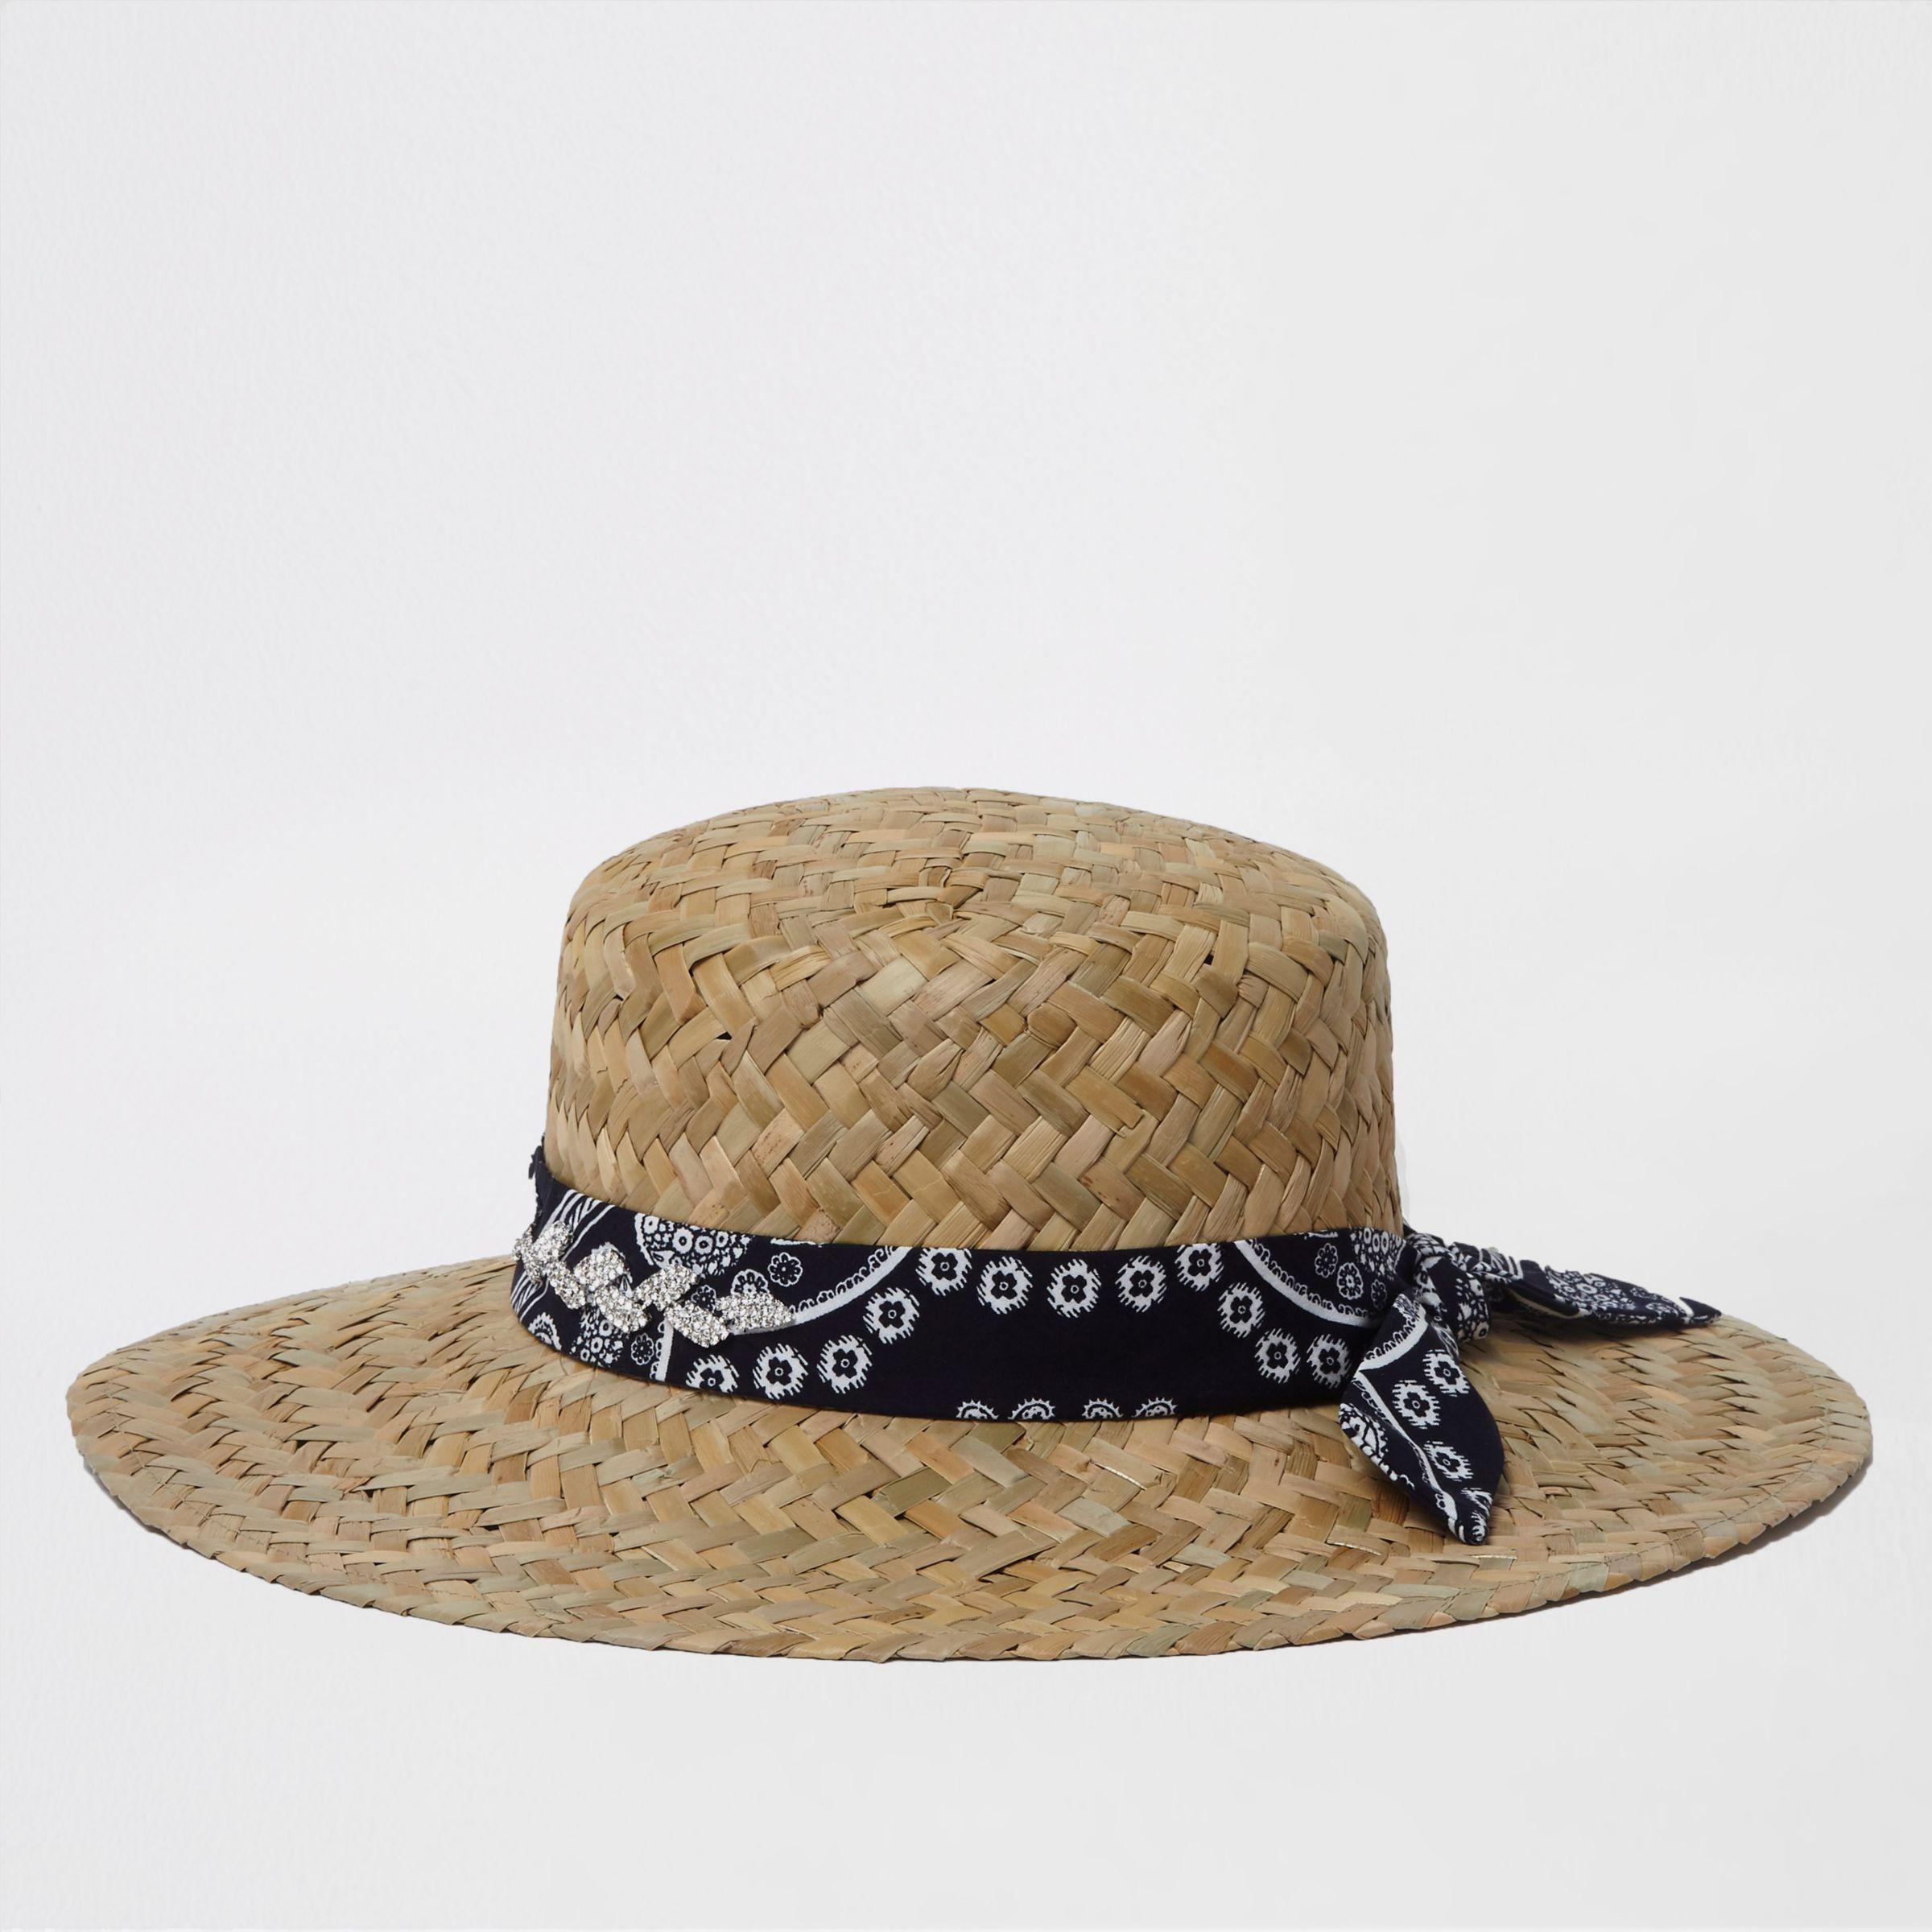 Womens Light Brown chunky weave straw hat River Island Cheap From China Big Sale Cheap Price 100% Authentic Cheap Online Countdown Package Sale Online 8LeB0i8PBh